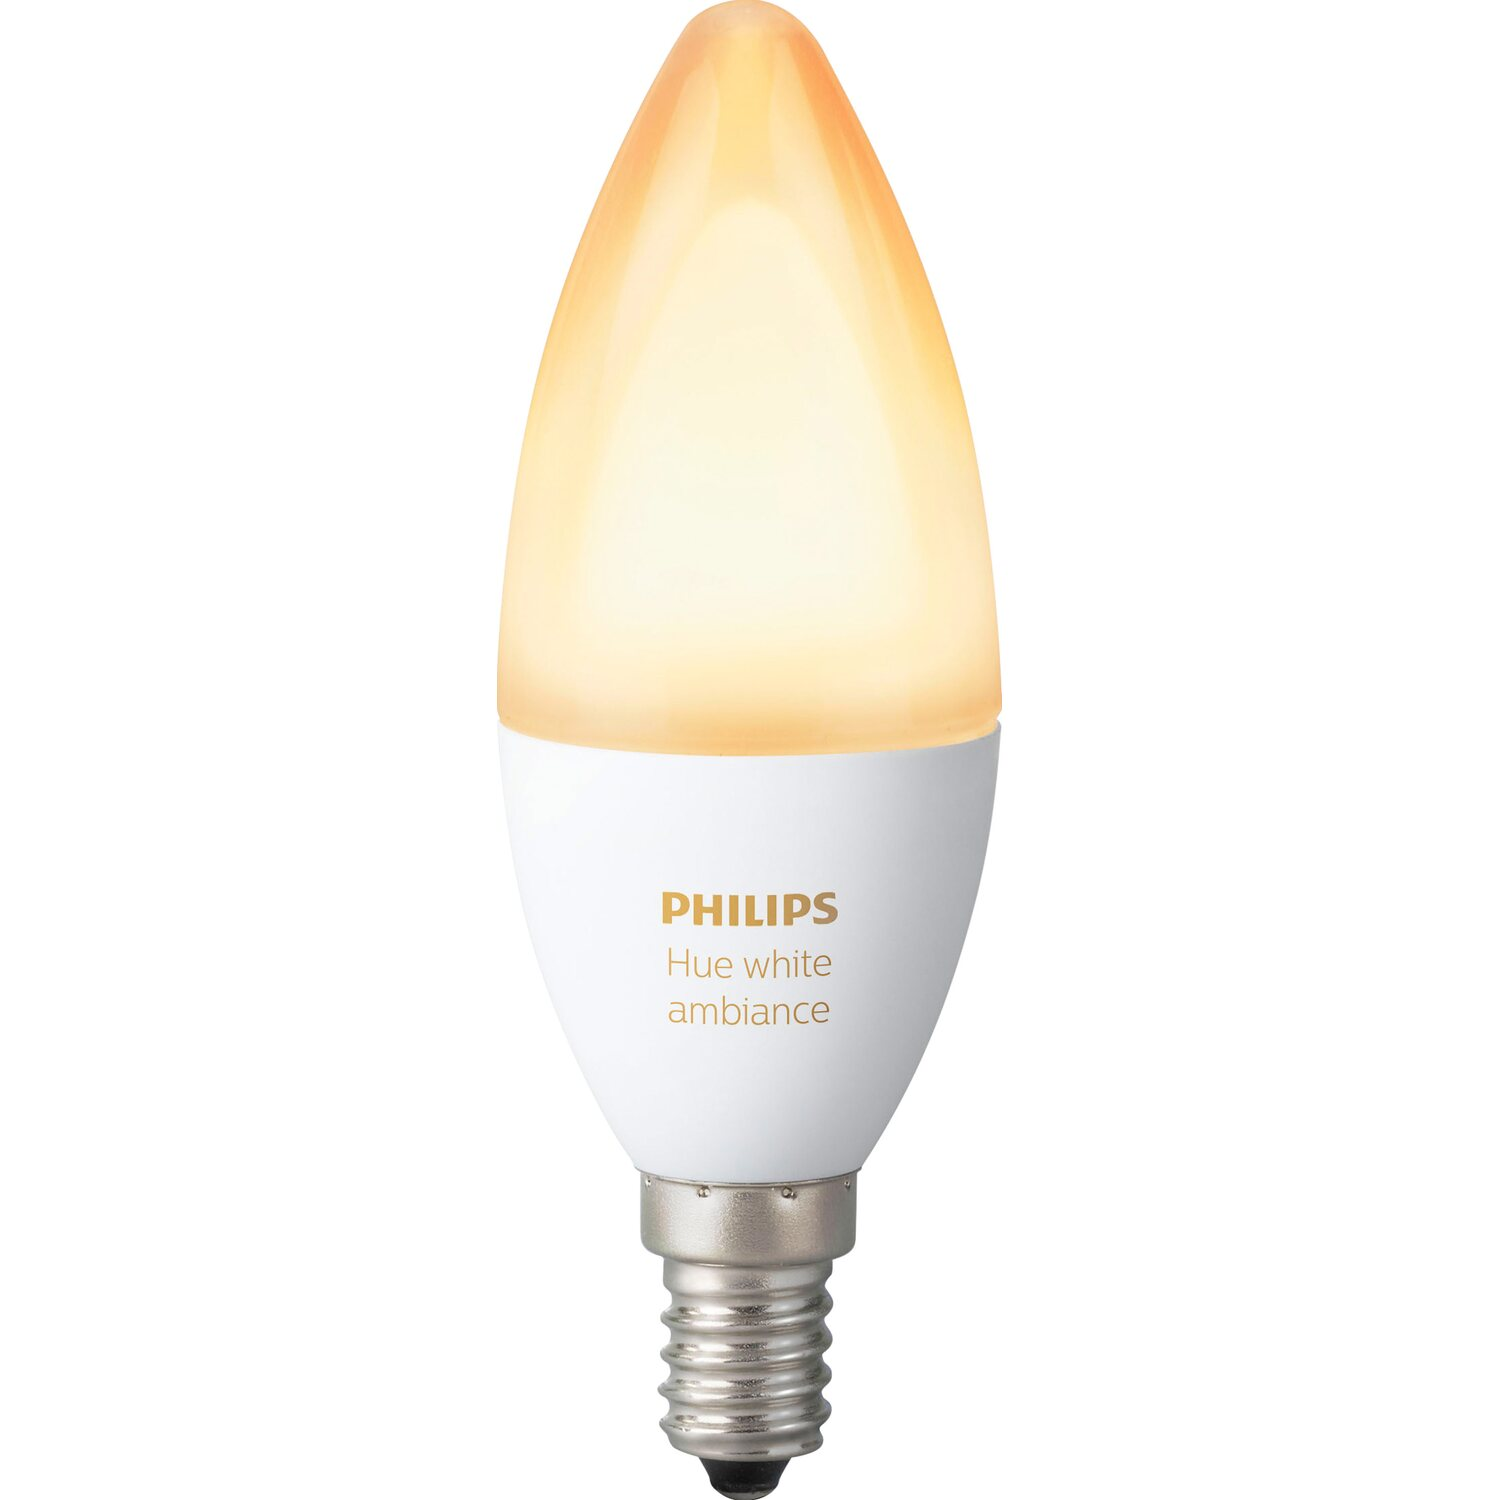 philips hue led kerze white ambiance e14 6 w 470 lm eek a kaufen bei obi. Black Bedroom Furniture Sets. Home Design Ideas